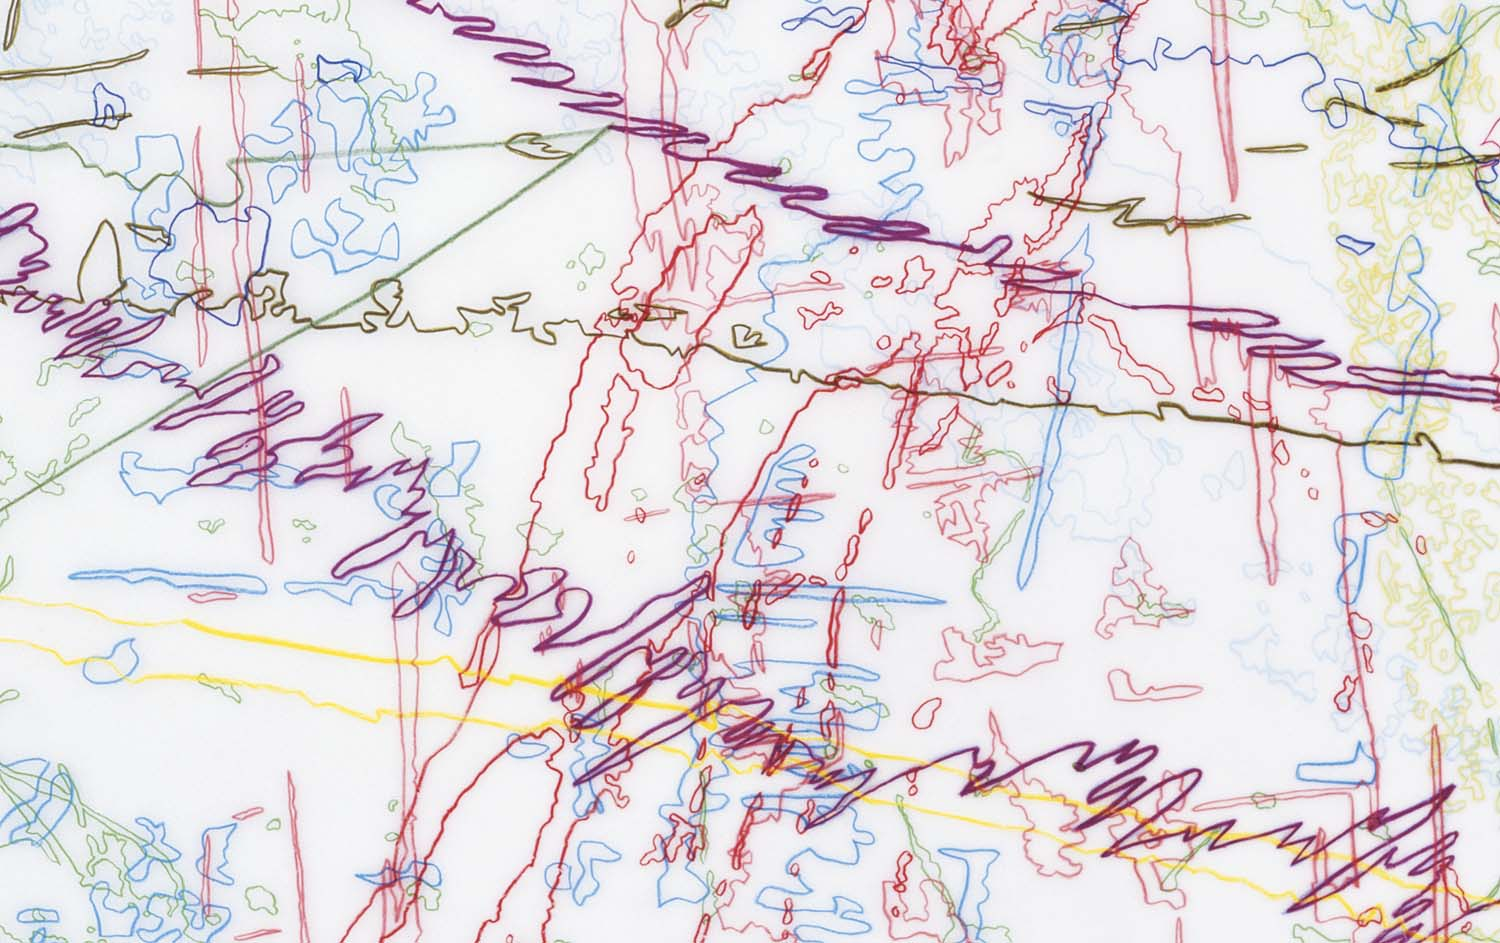 #258 Drawing (Tracings from the Indianapolis Motor Speedway and the L.A. River) DETAIL